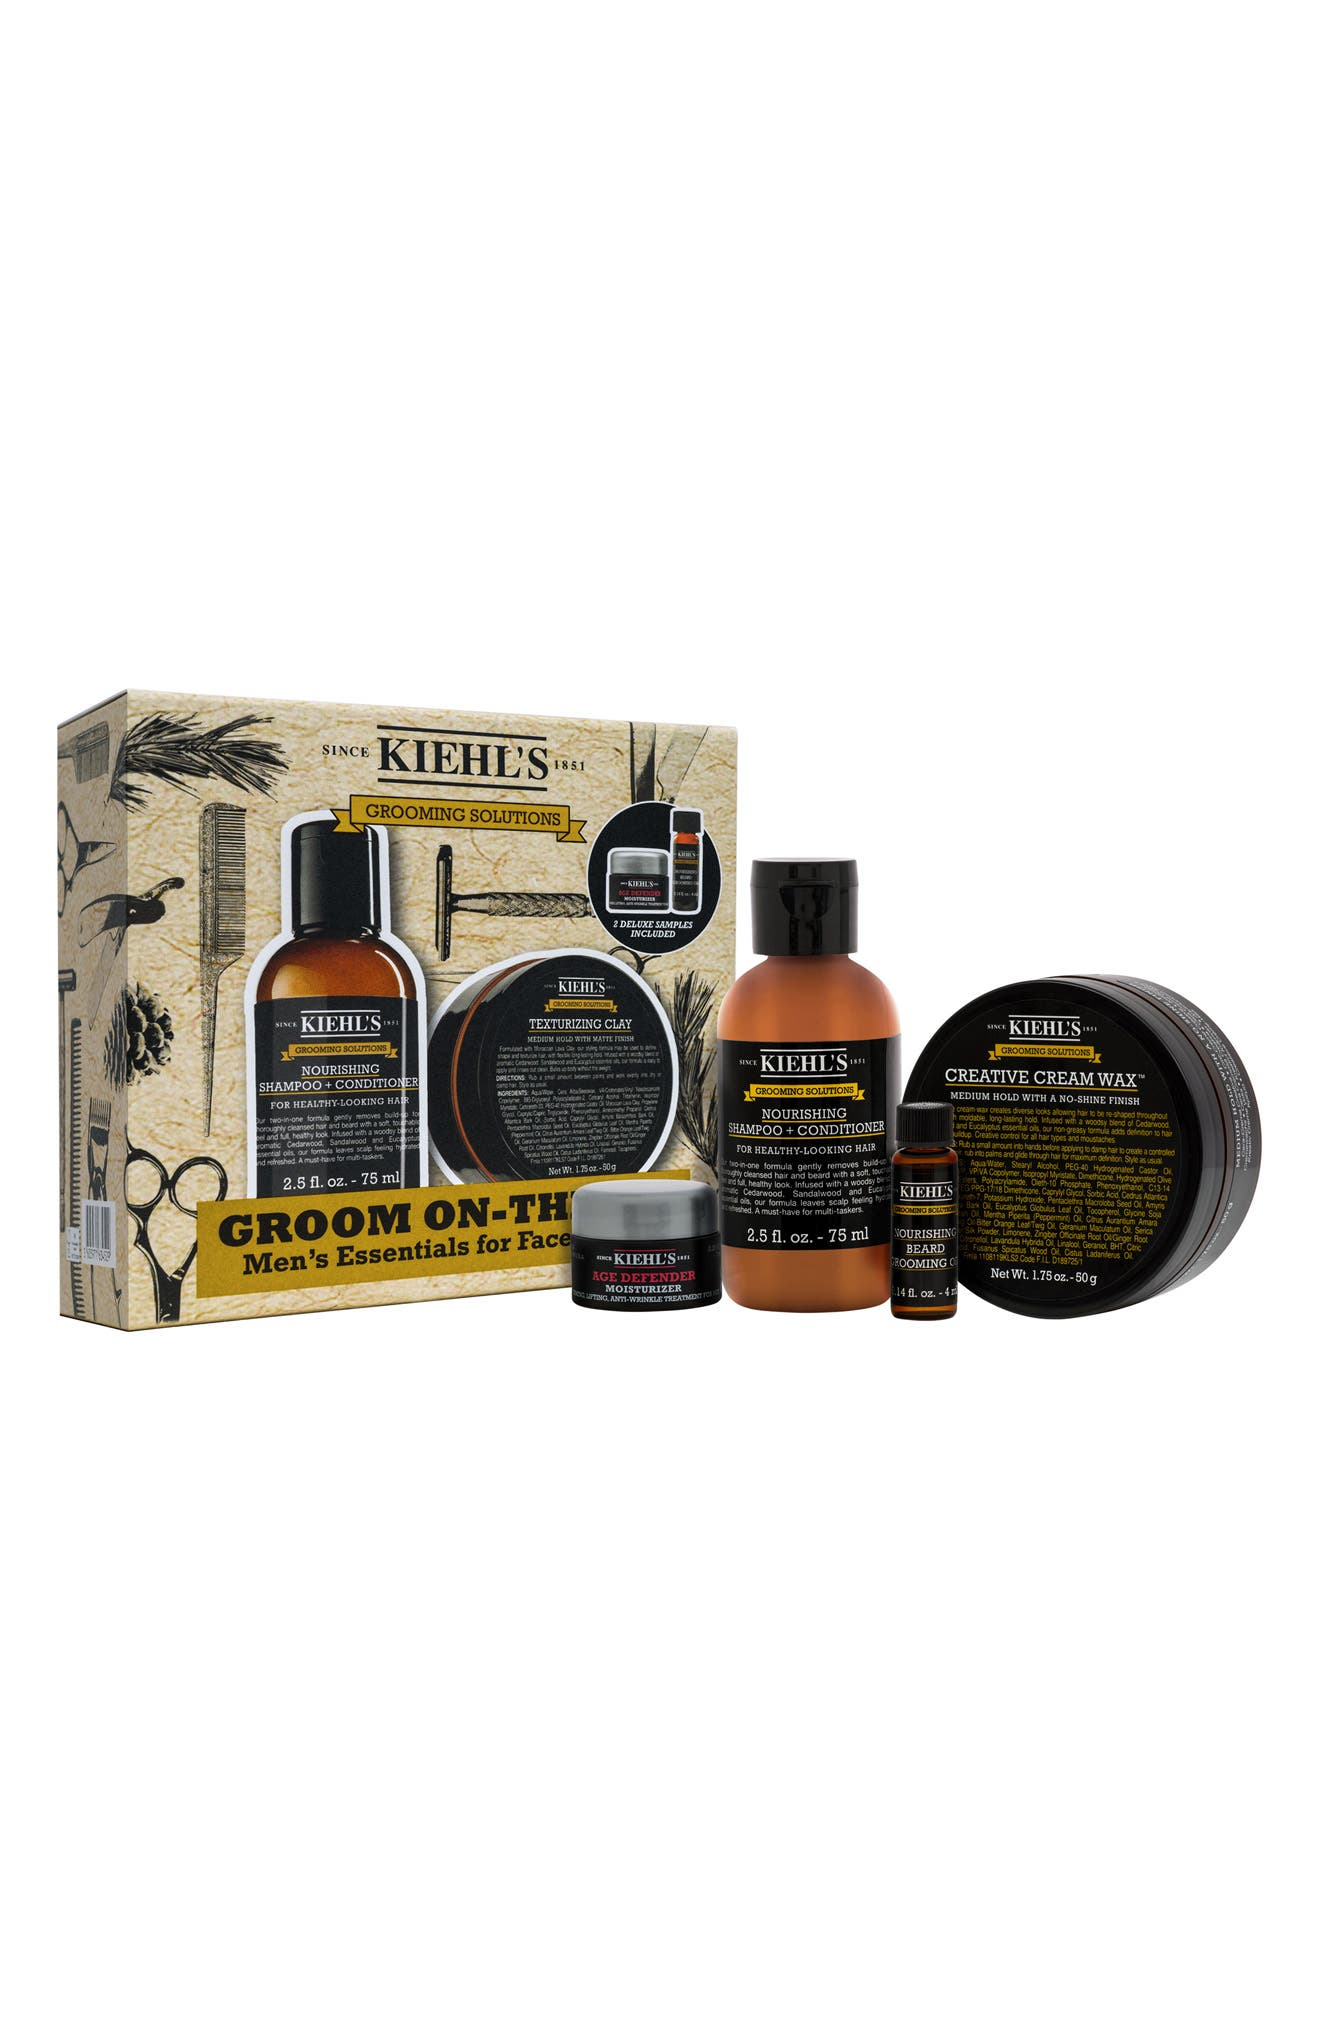 Main Image - Kiehl's Since 1851 Men's Grooming Set